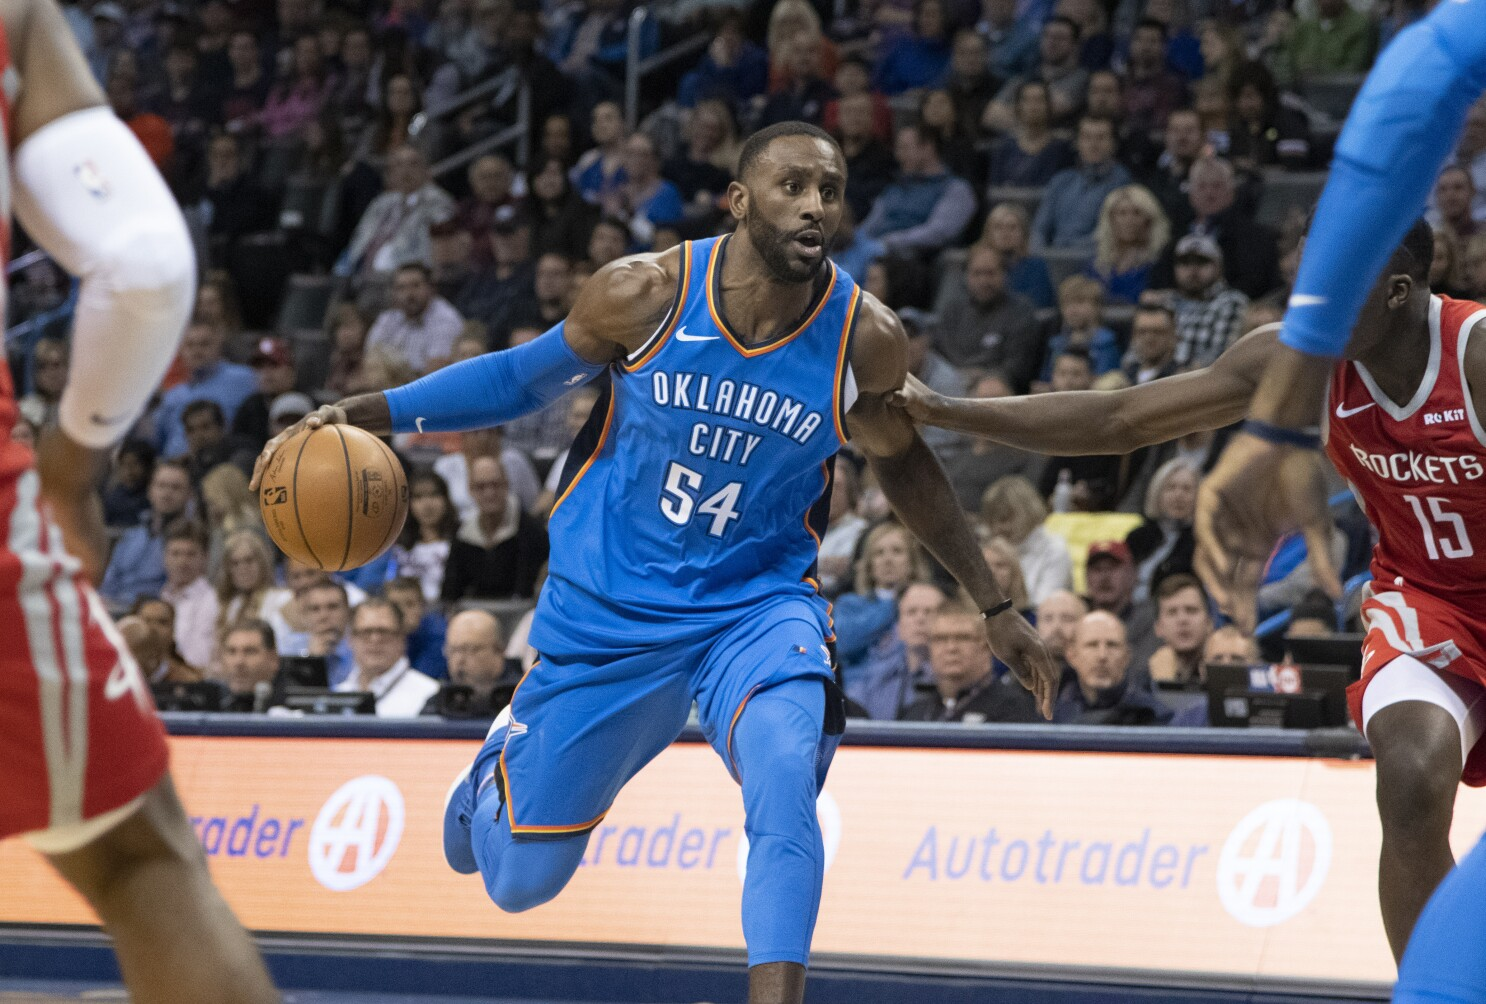 Clippers add forward Patrick Patterson on one-year deal